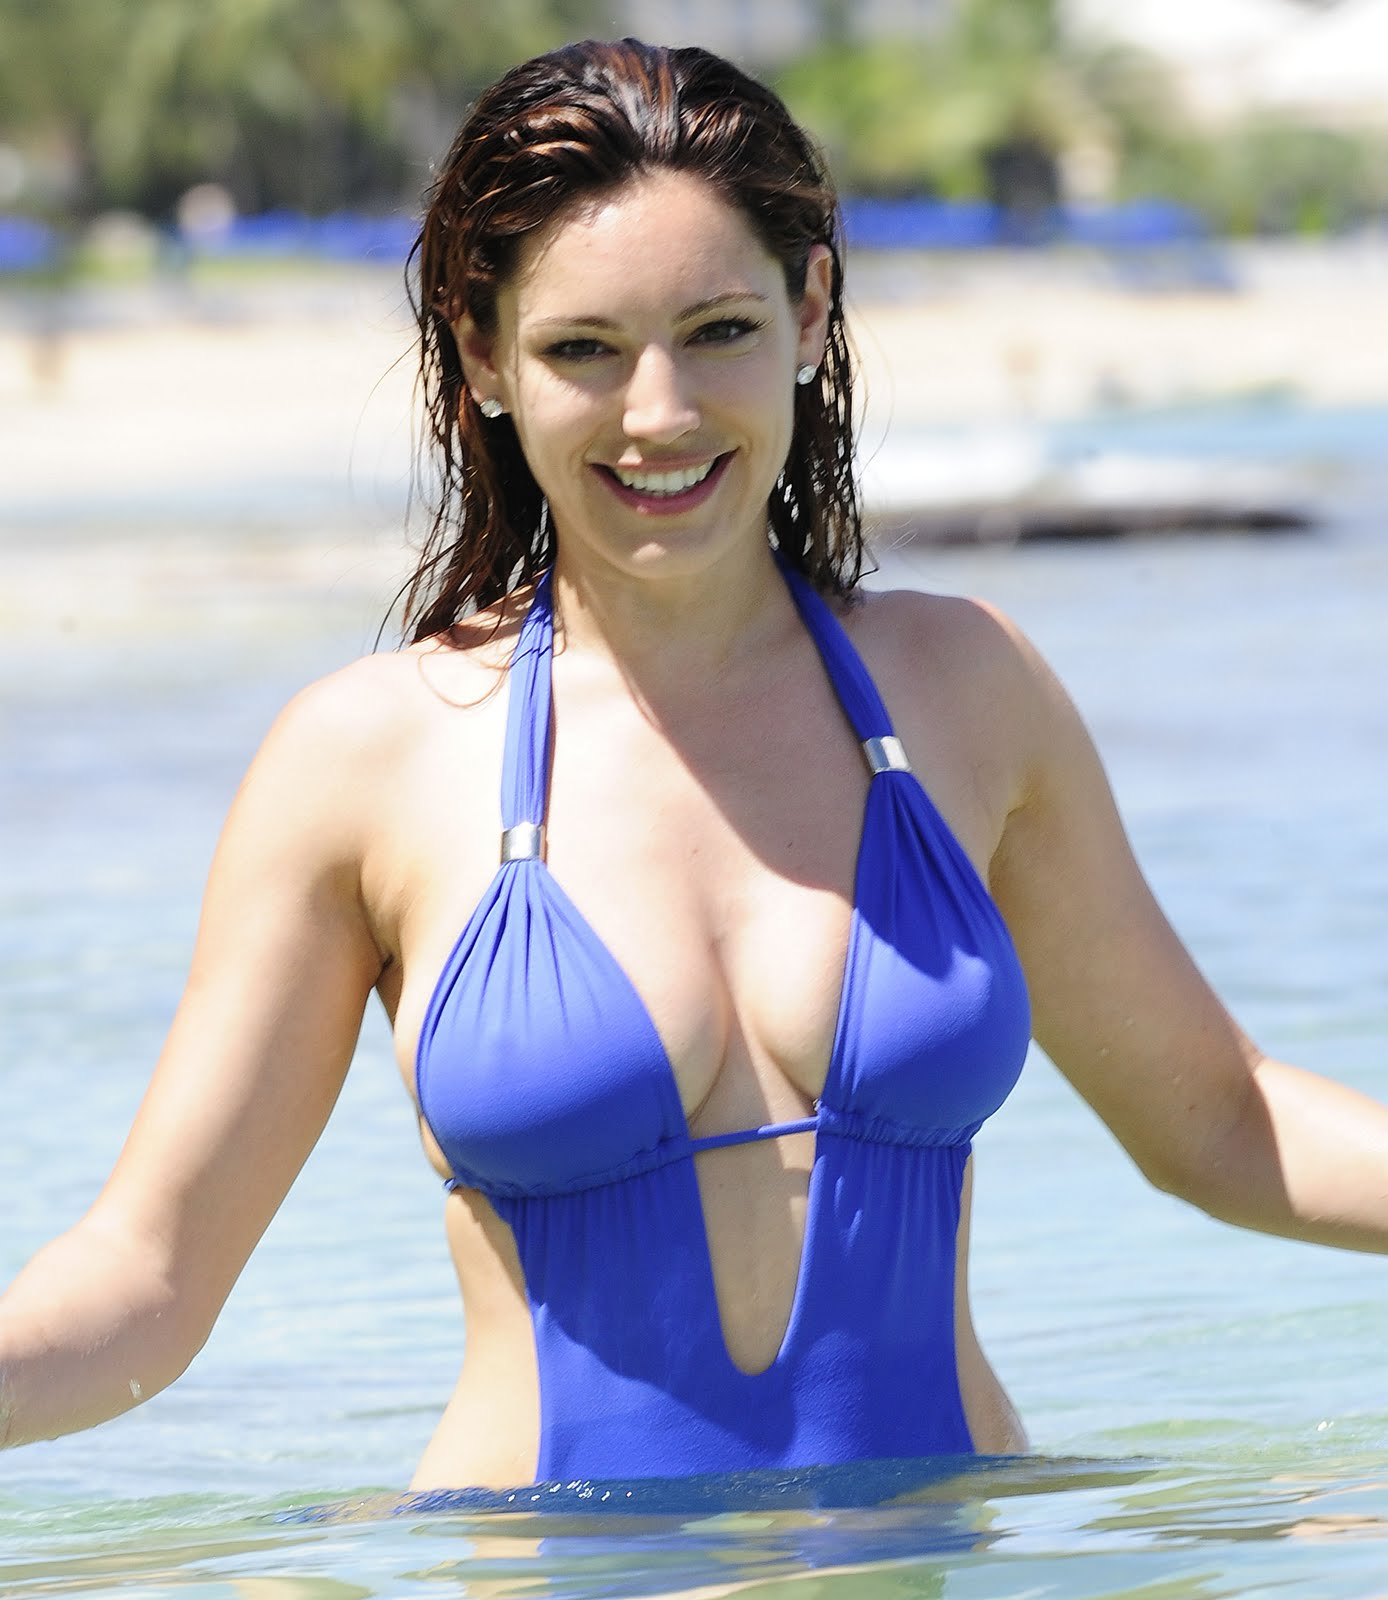 Kelly Brook in Patterned Bikini on the beach in Thailand Pic 8 of 35